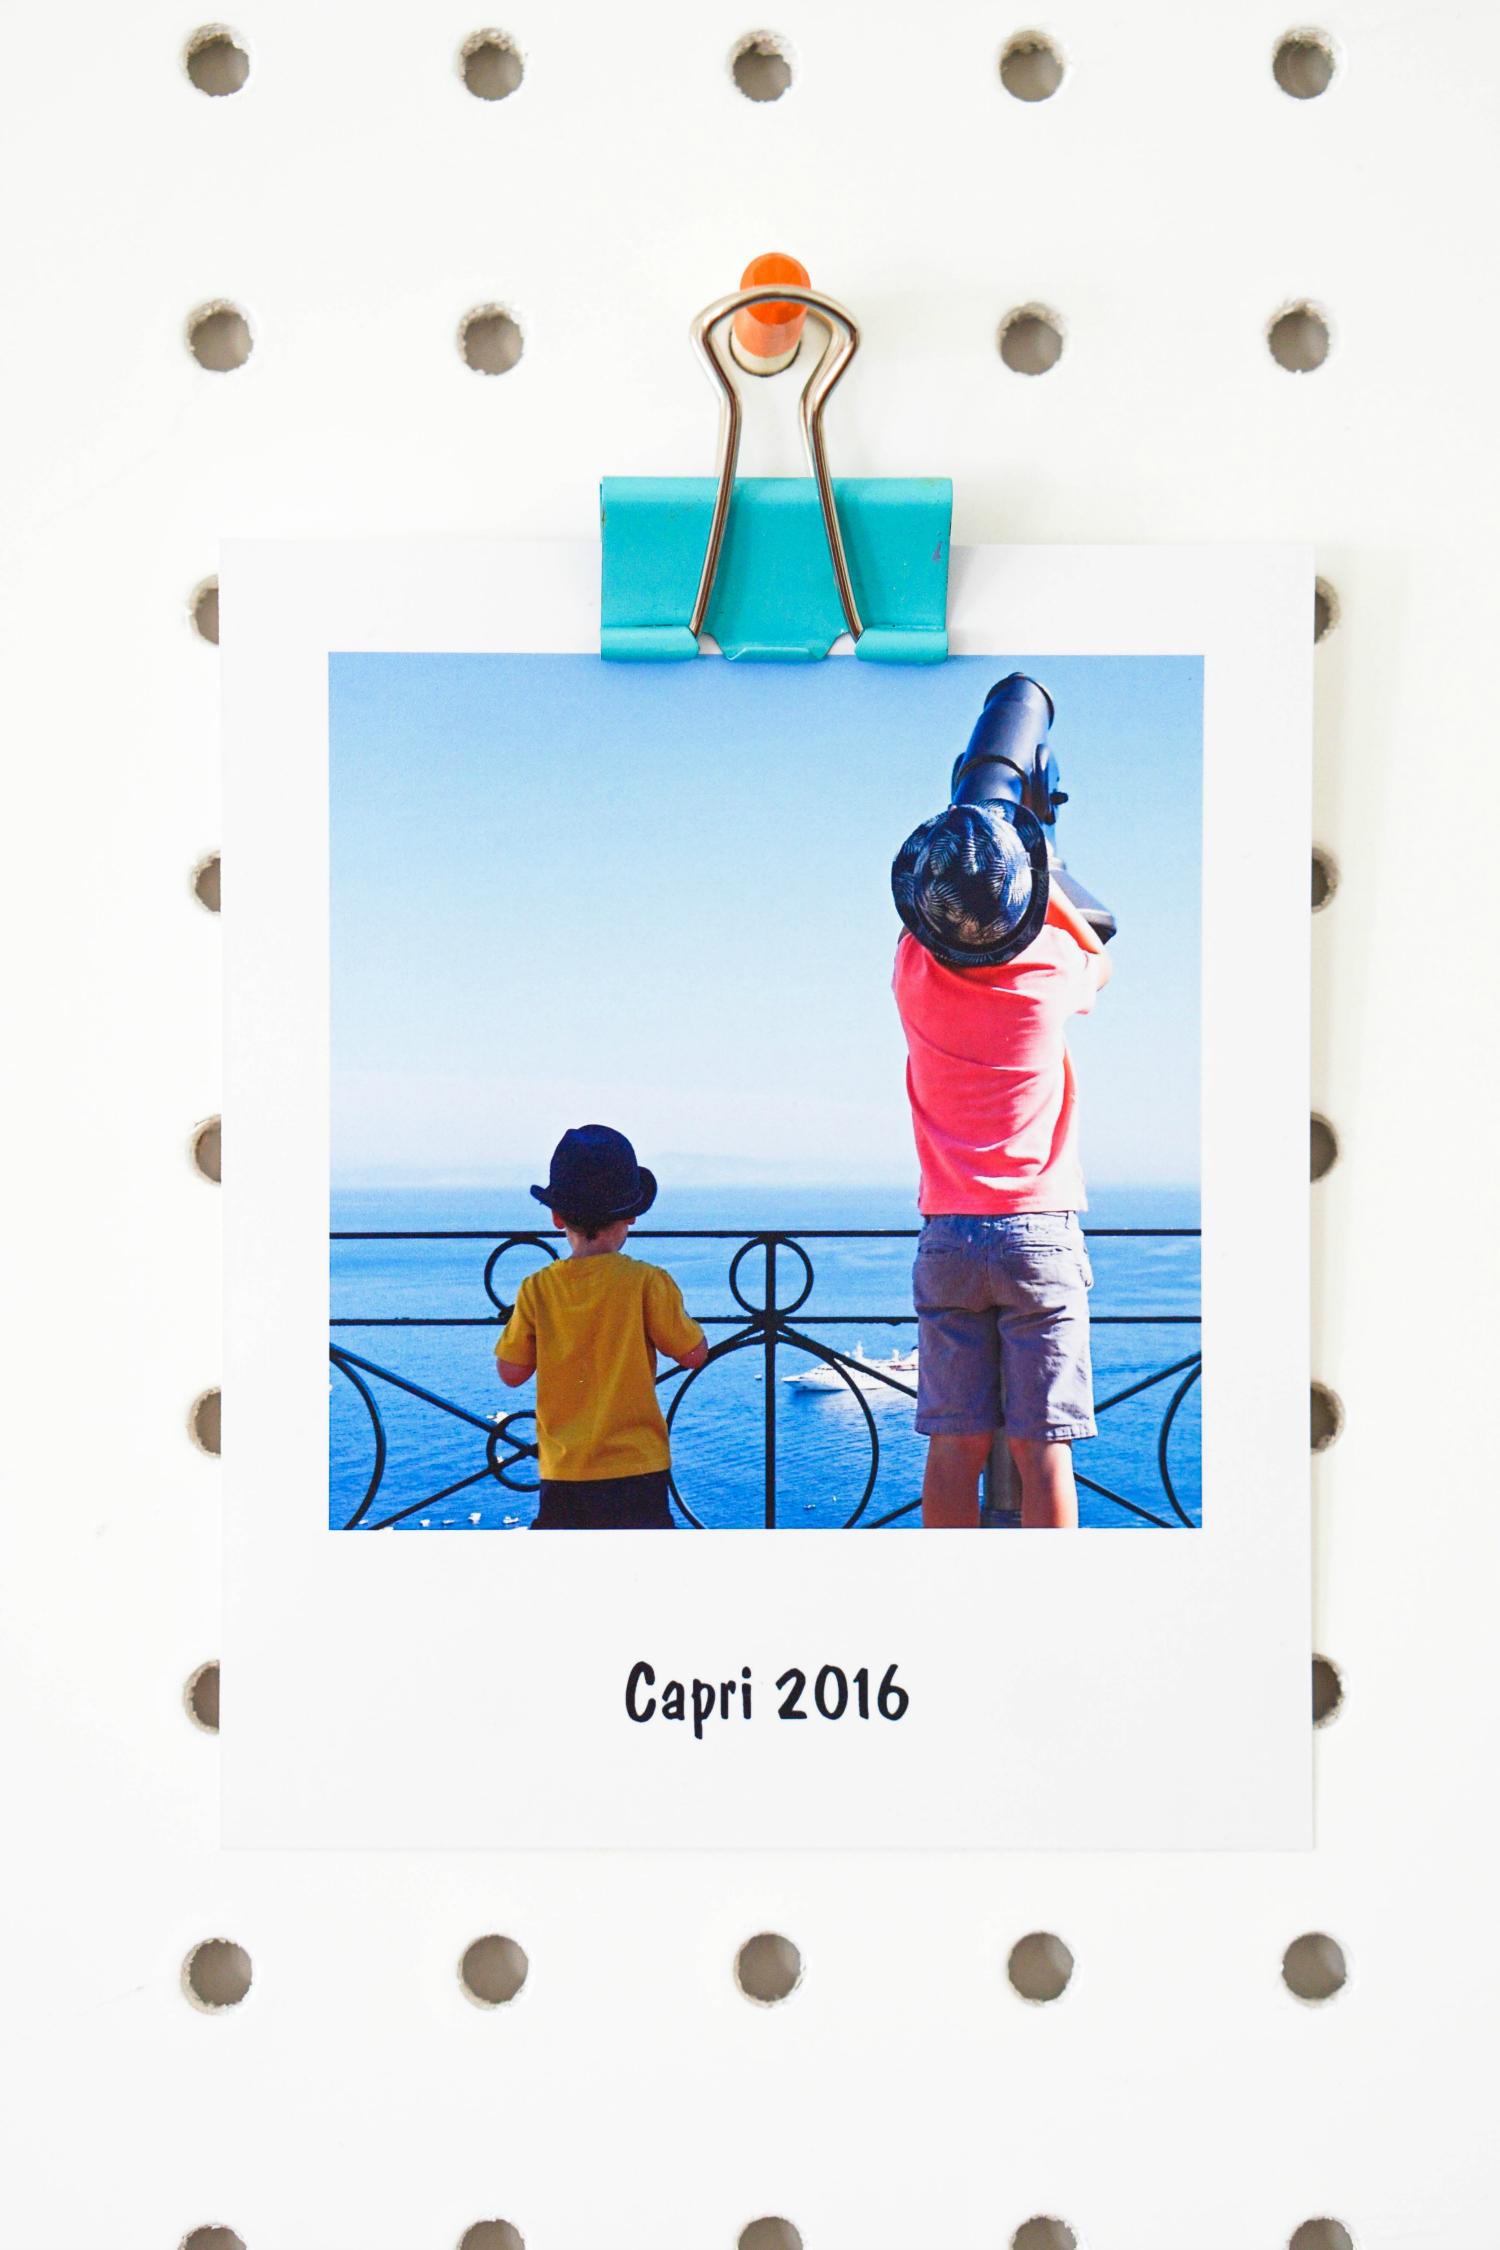 The Ordinary Lovely: Five ways to display and use your photo prints